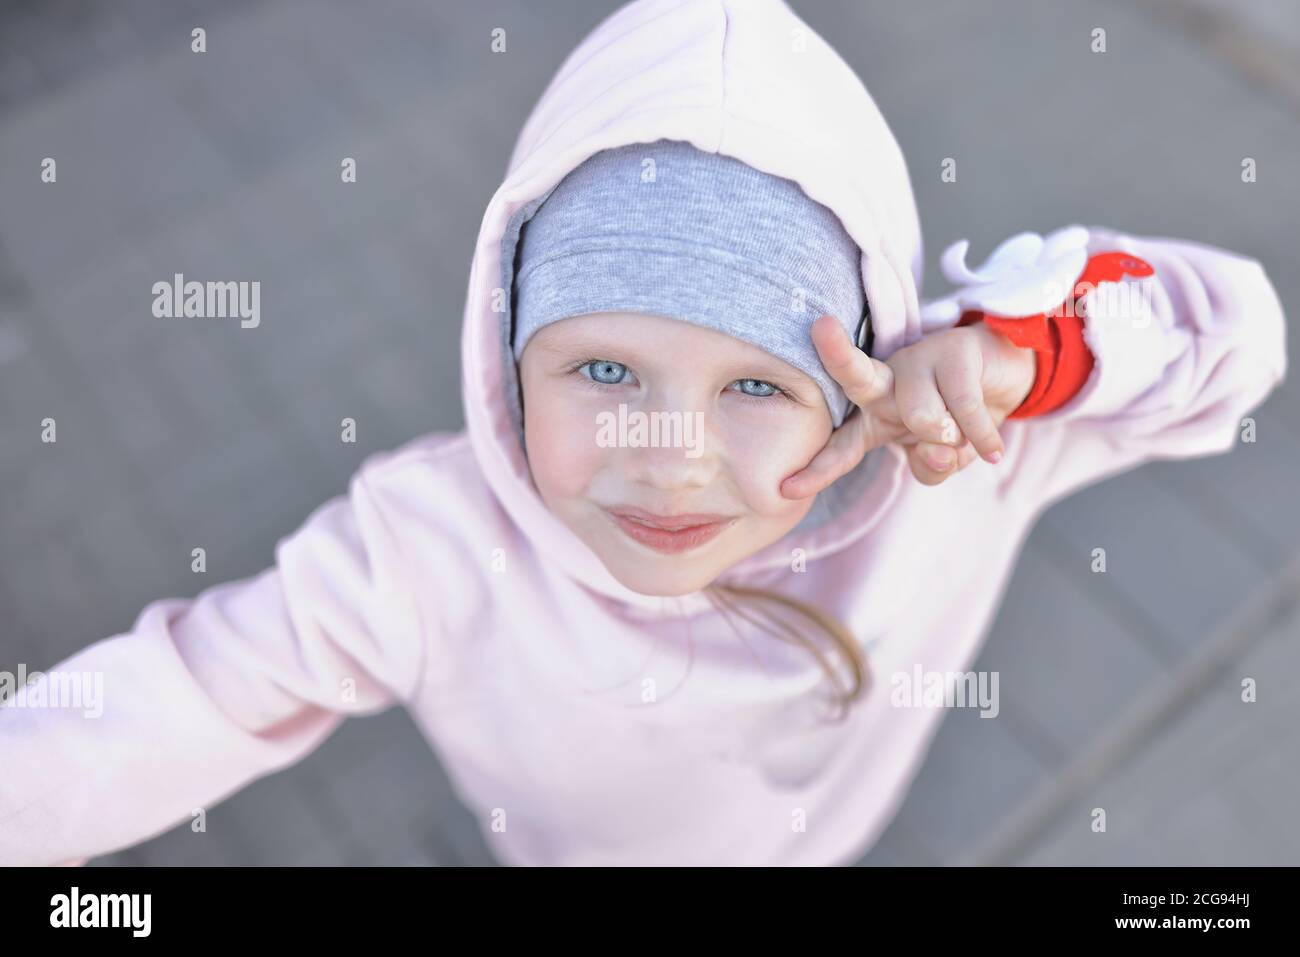 Little girl with blue eyes in warm clothes and hood looks up and greets with gesture. Stock Photo